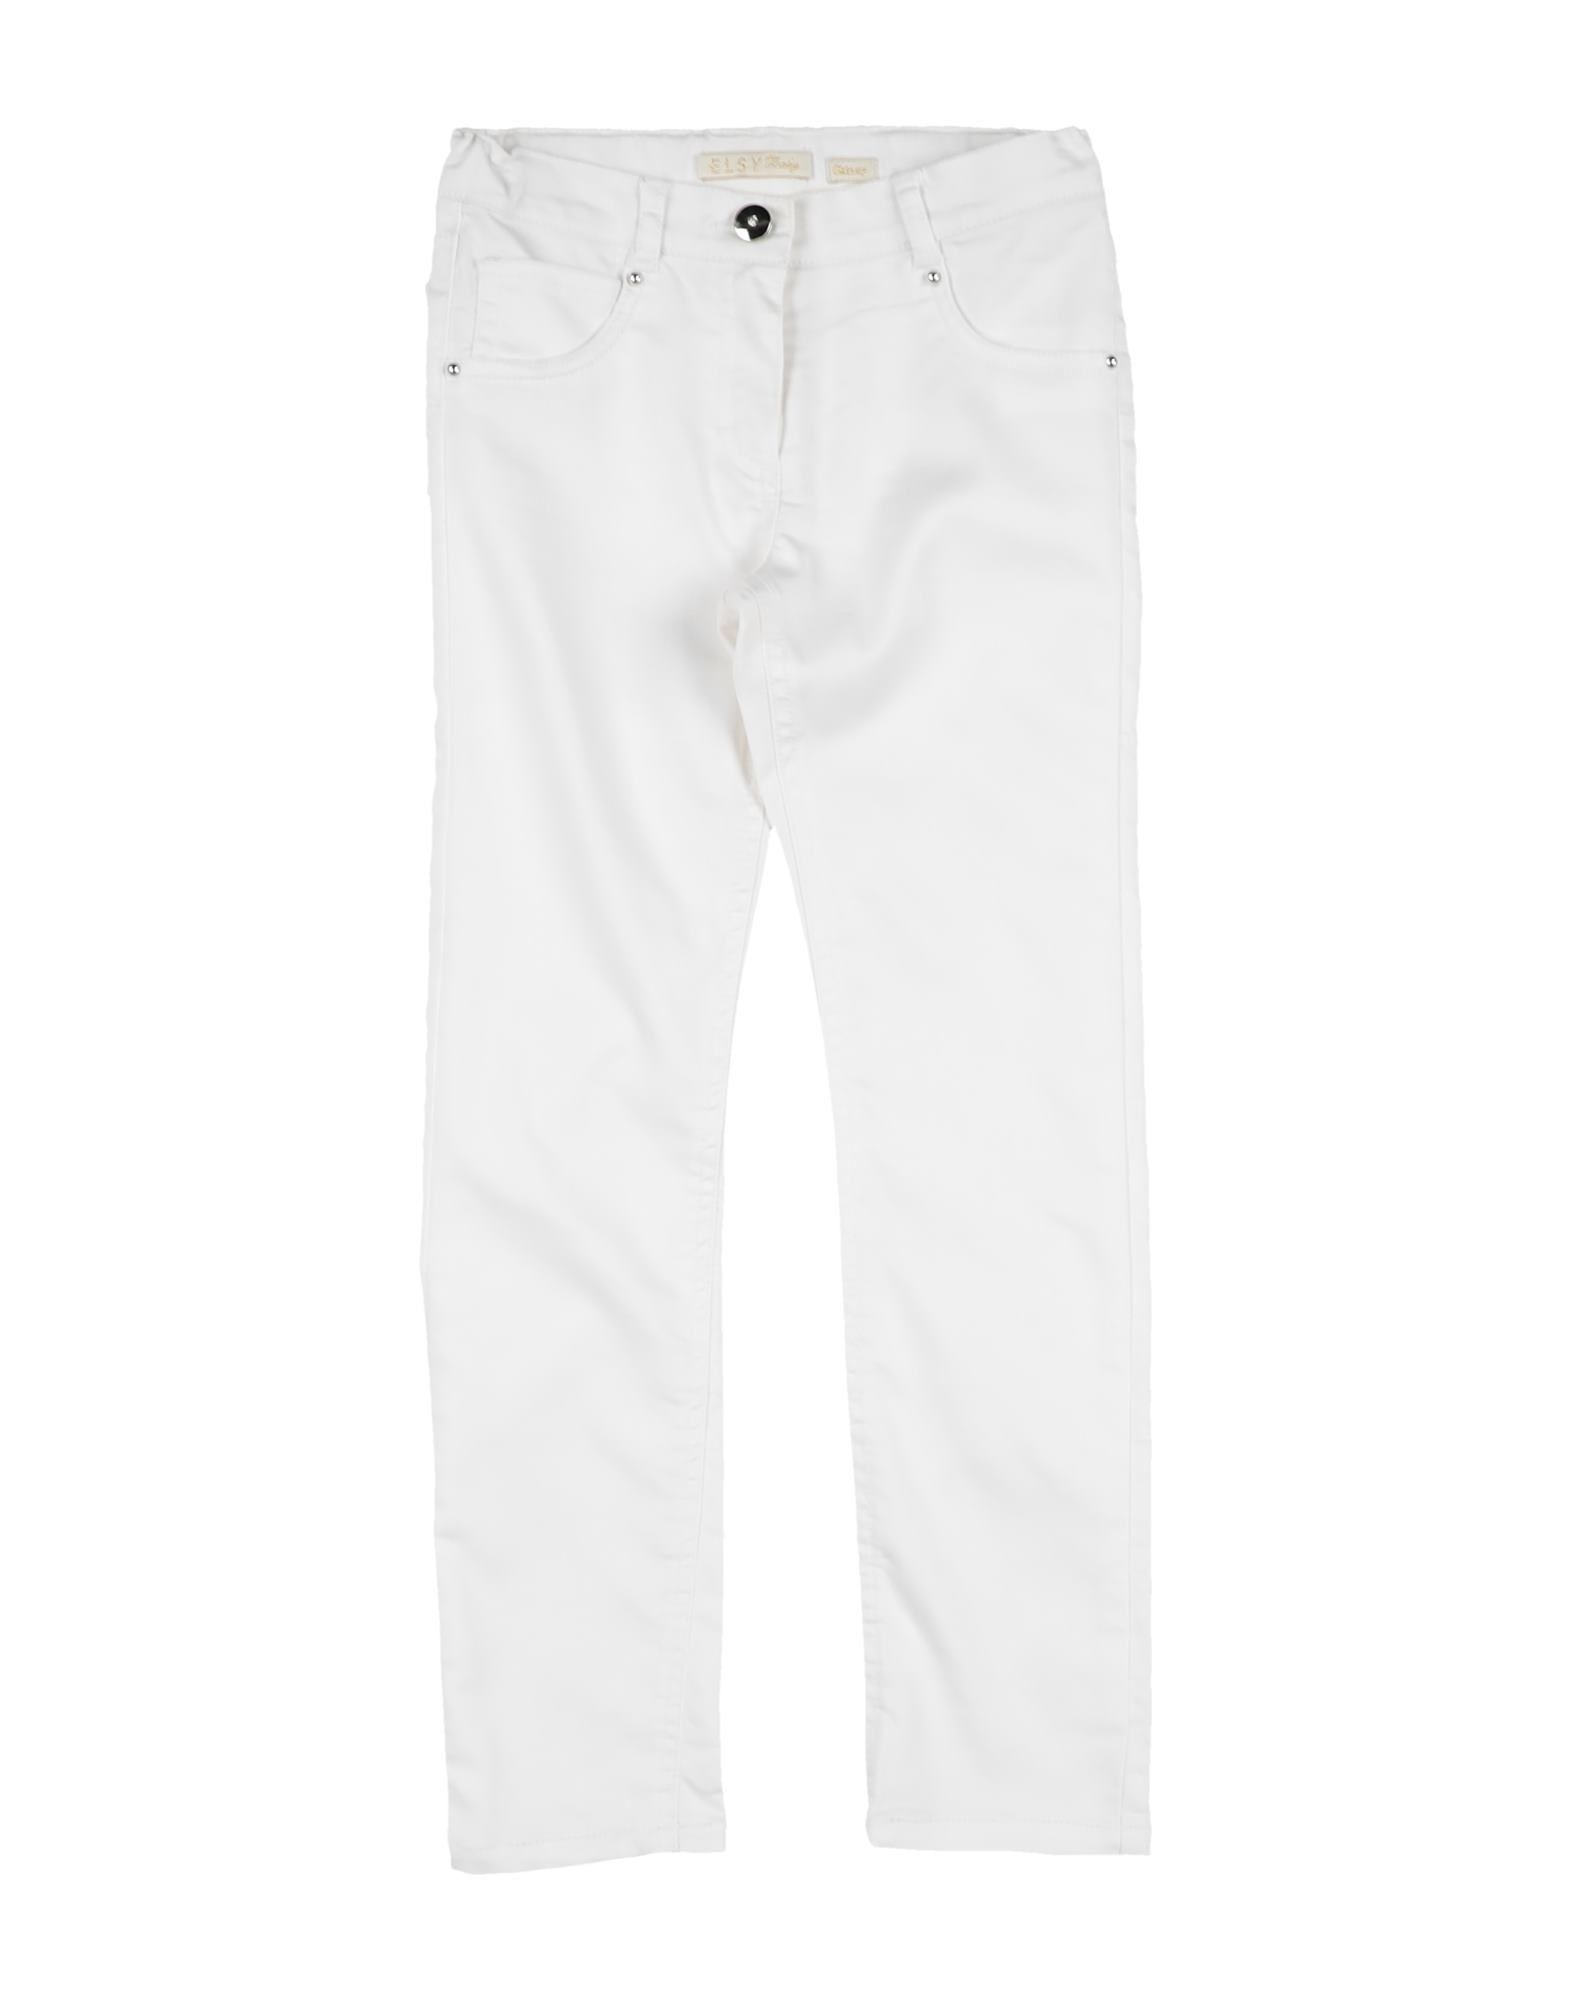 Elsy Kids' Casual Pants In Ivory